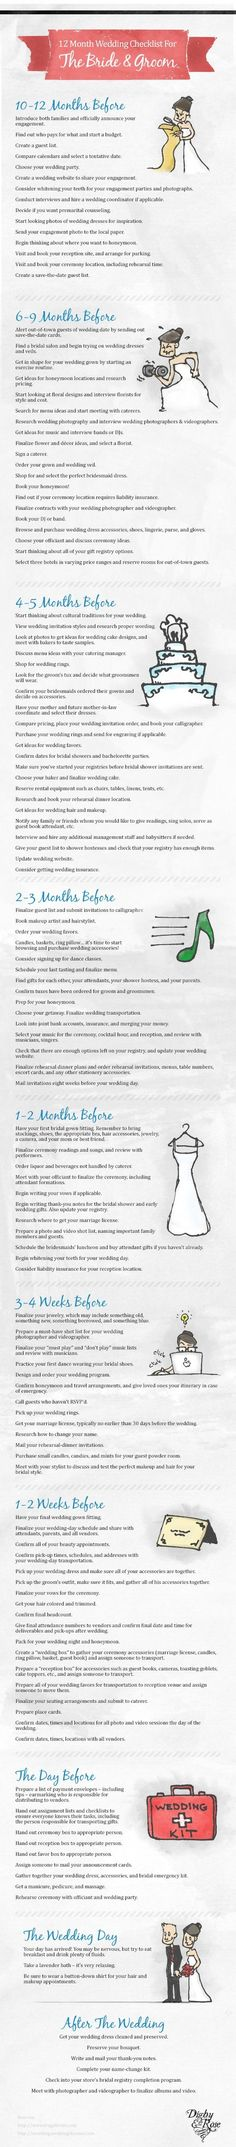 Wedding Checklist I cant believe I'm down to 5 months! 12 Month Wedding Checklist For The Bride and Groom - Source: Wedding Planning Checklist by Digby Wedding To Do List, Do It Yourself Wedding, Wedding Tips, Wedding Events, Our Wedding, Dream Wedding, Trendy Wedding, Wedding Timeline, Budget Wedding